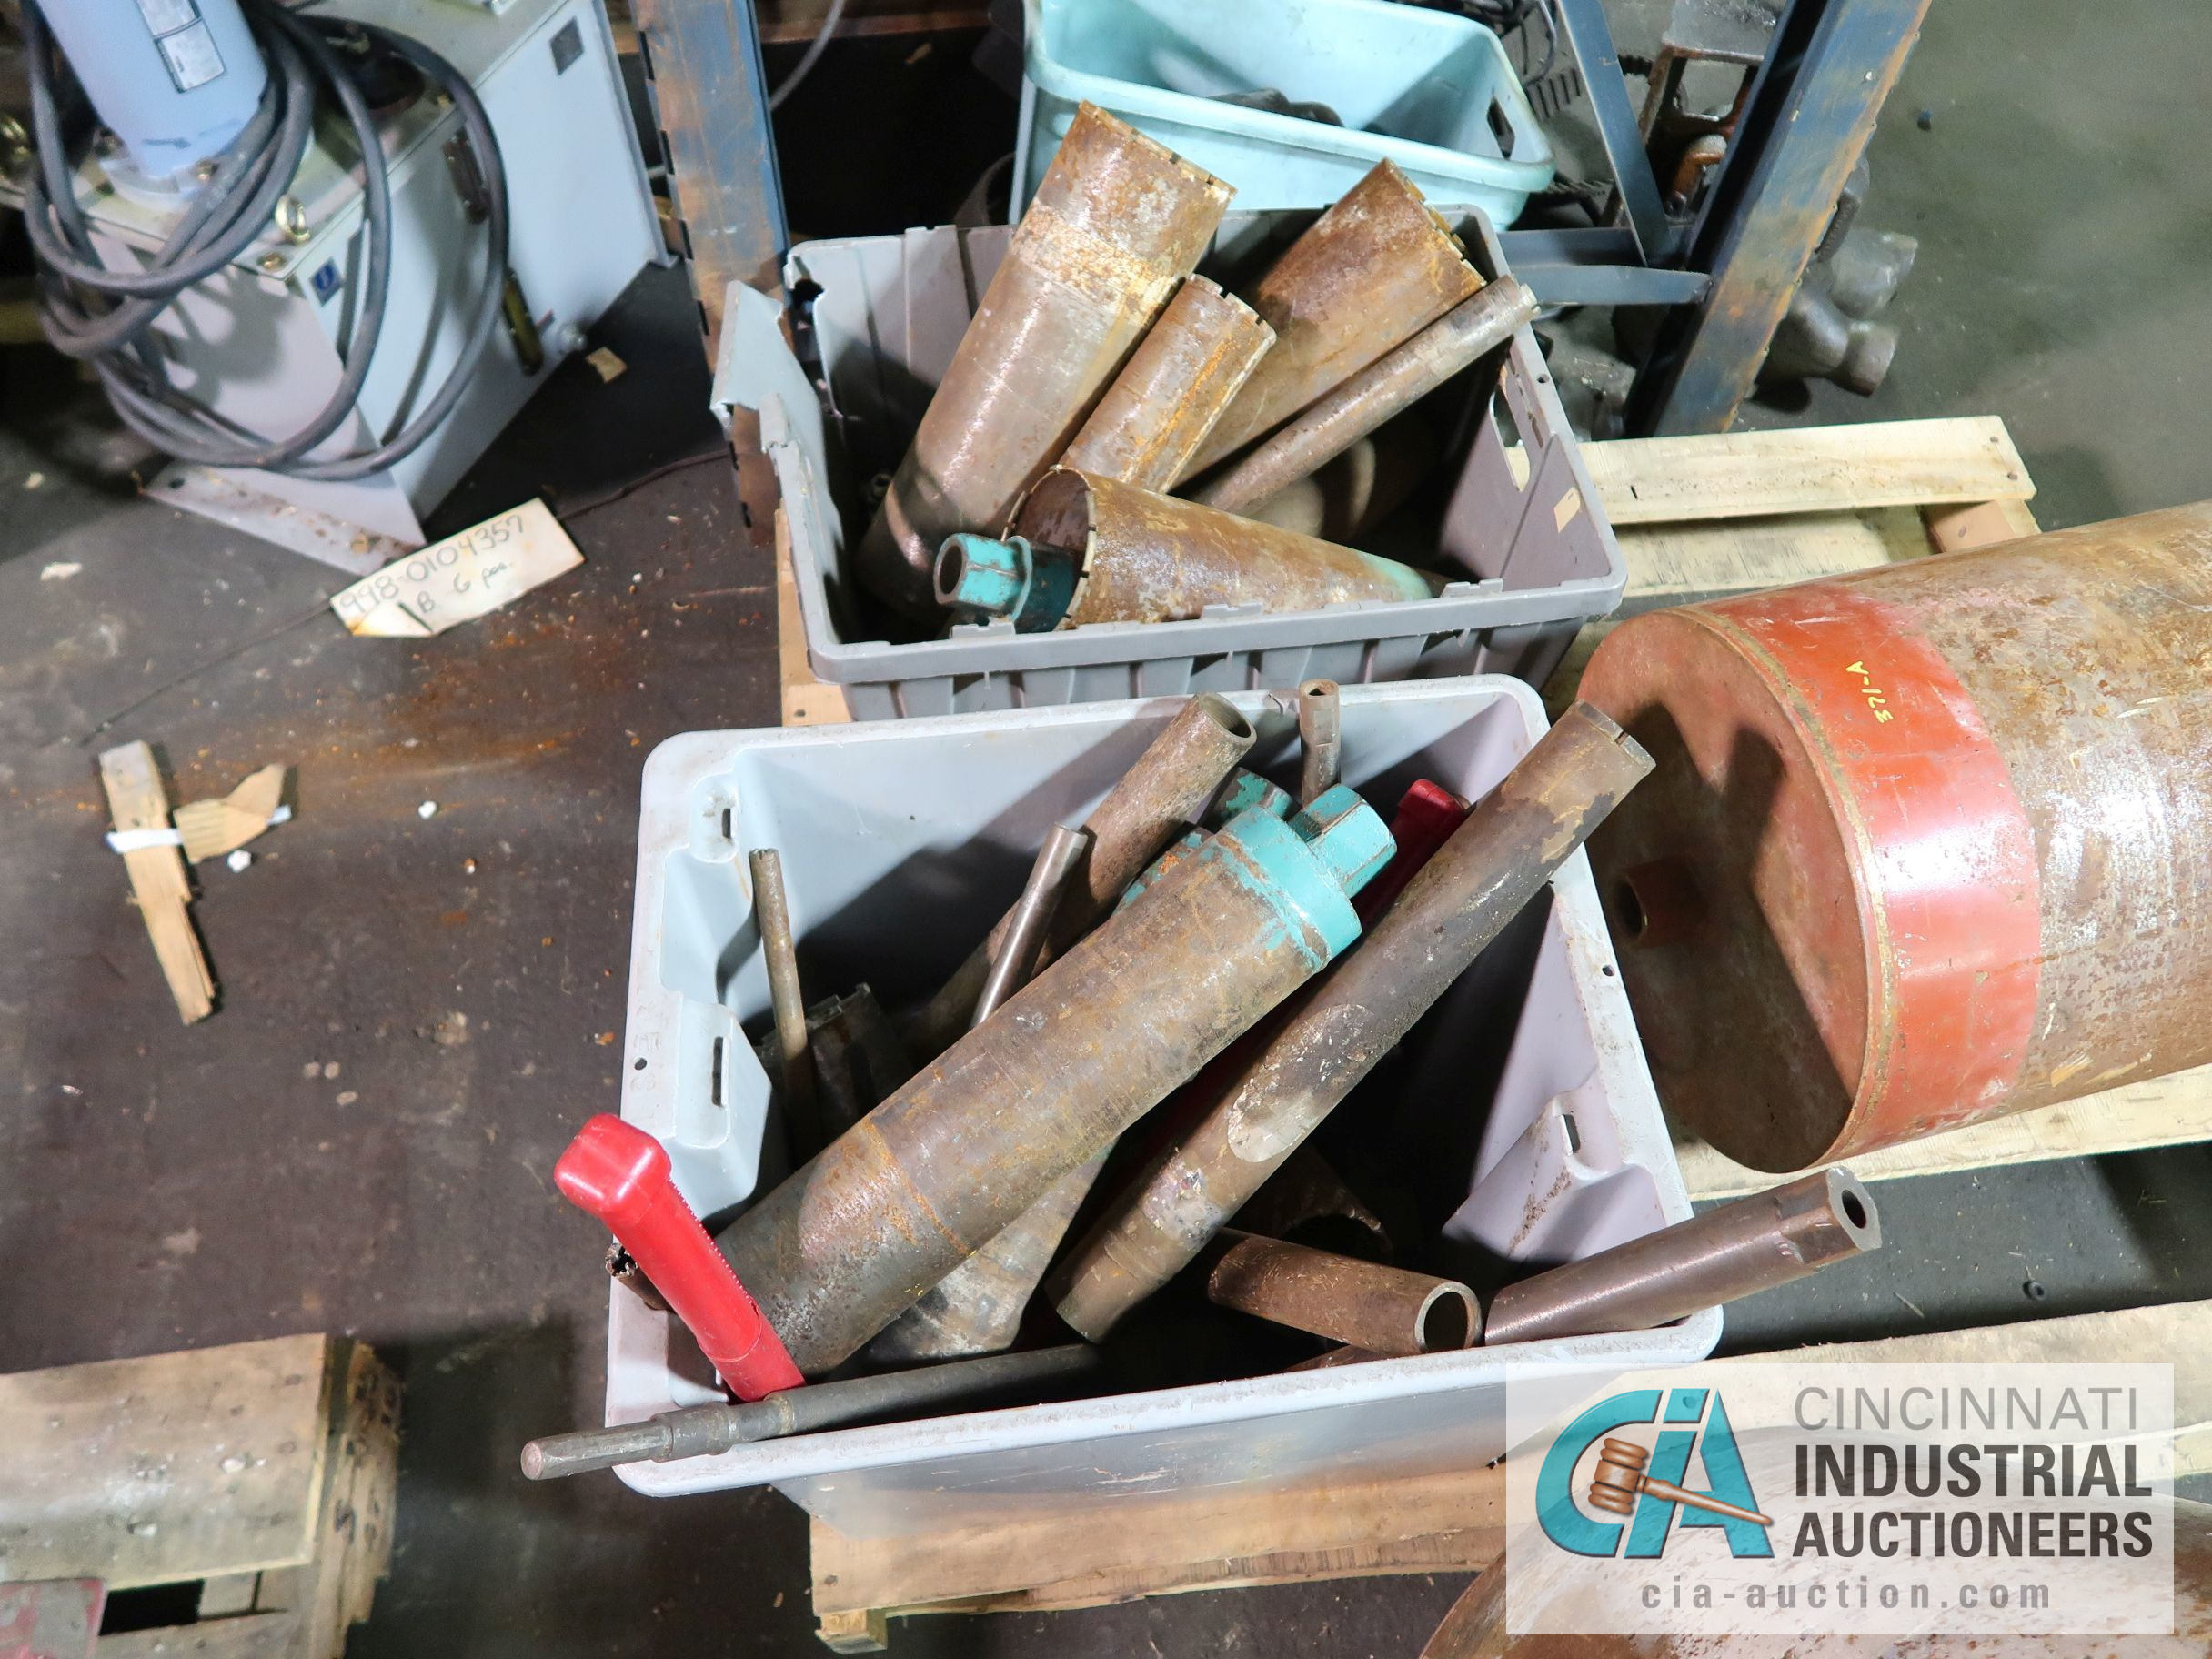 """(LOT) CONCRETE CORE DRILLS - (1) AT 22"""", (1) AT 13"""" AND OTHER SMALLER SIZES - Image 3 of 4"""